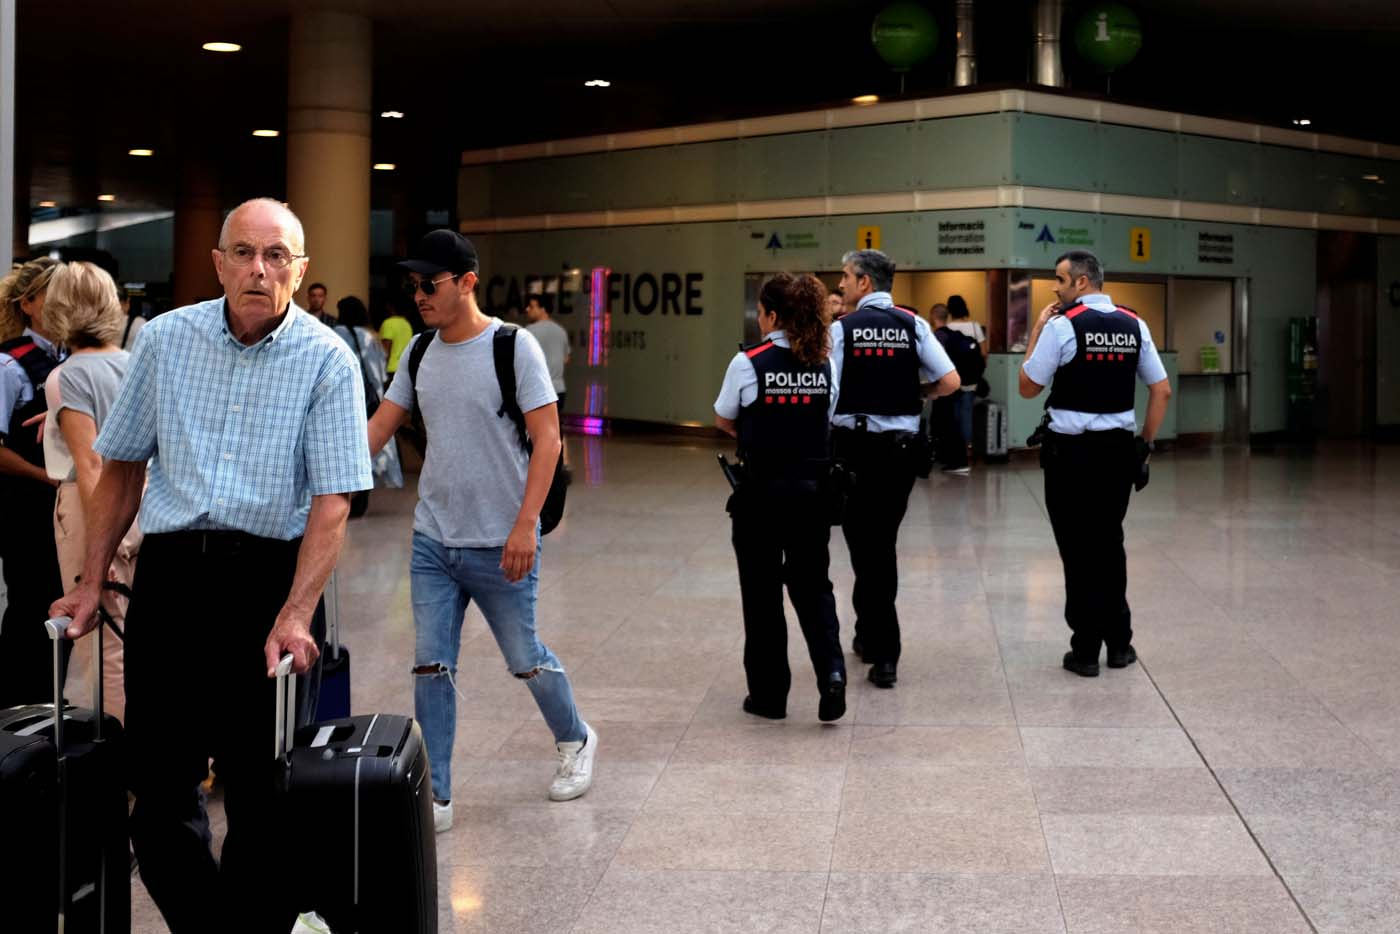 Spanish police patrol Barcelona El Prat airport the morning after Islamic State claimed responsibility for a vehicle attack on the city's Las Ramblas street in Barcelona, Spain August 18, 2017. REUTERS/James Lawler Duggan